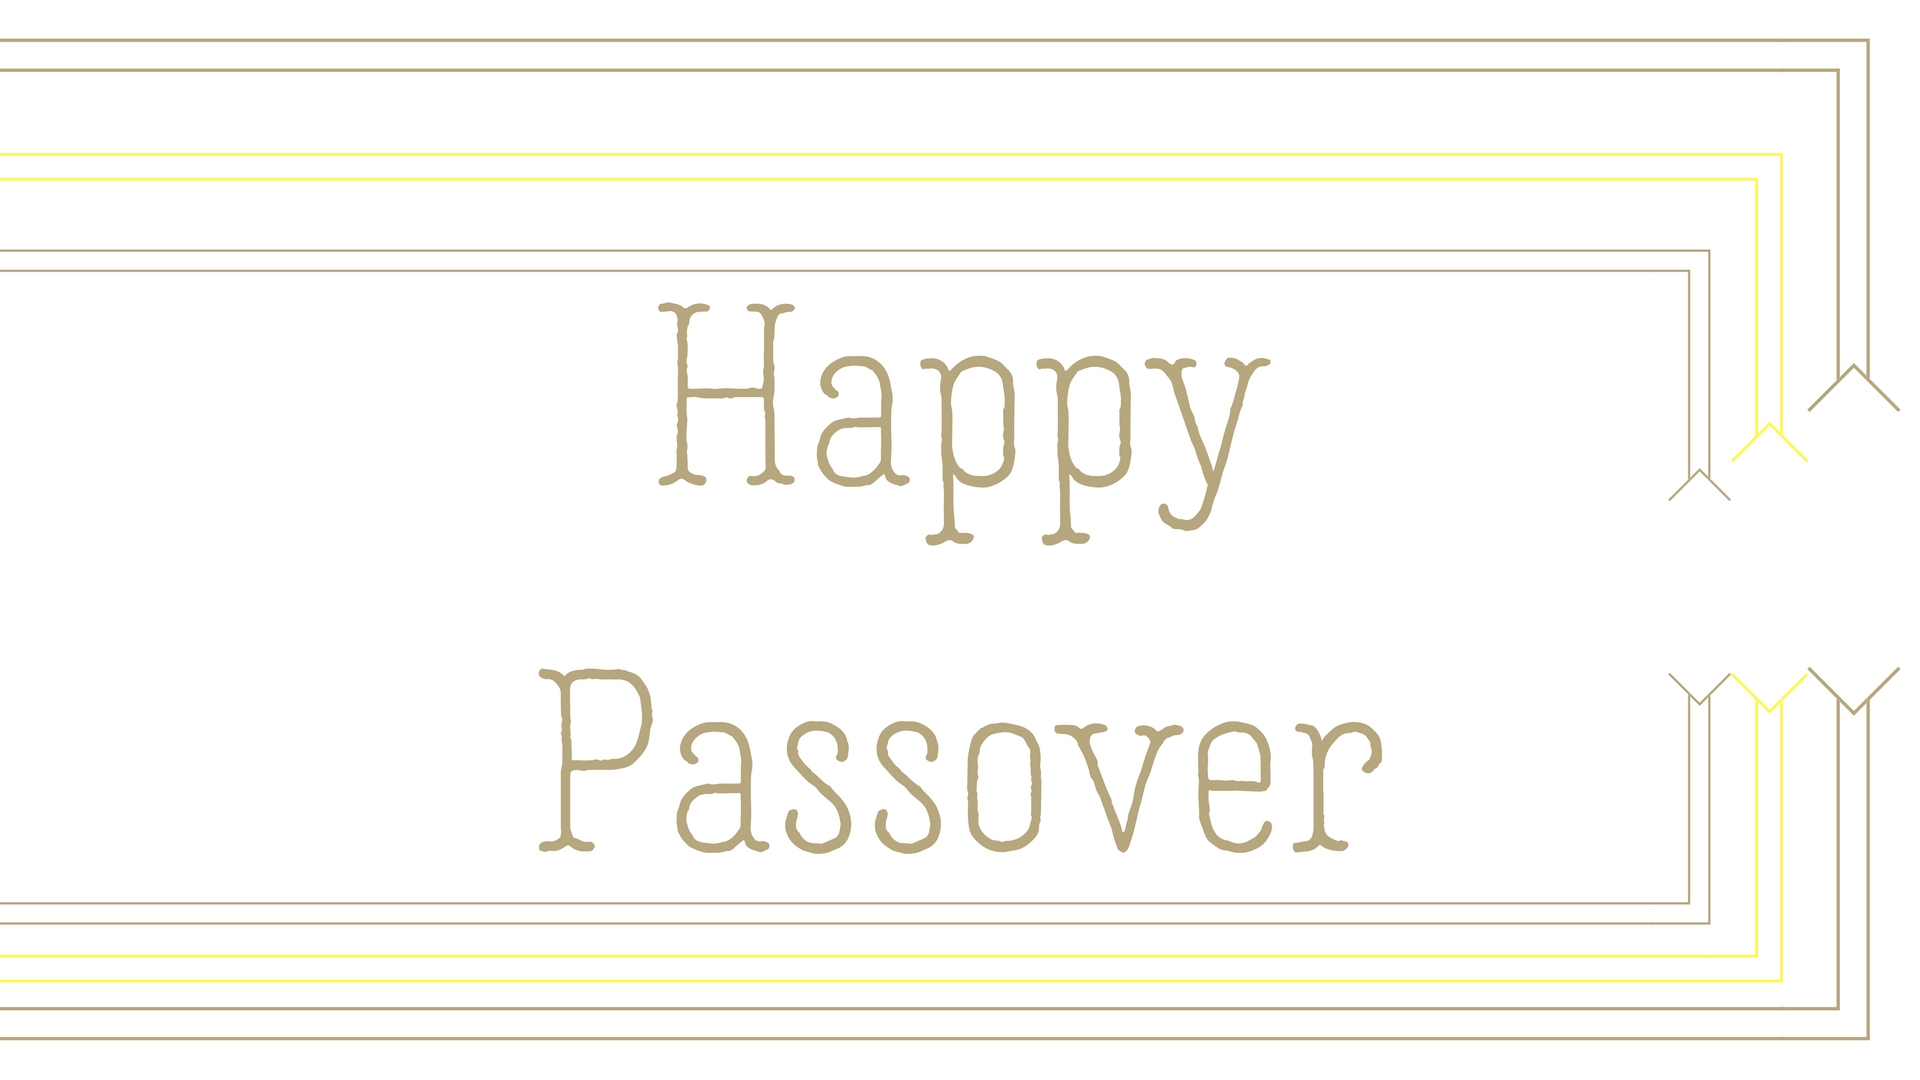 Happy Passover Rectangle Frame Greeting Card Postcard 6